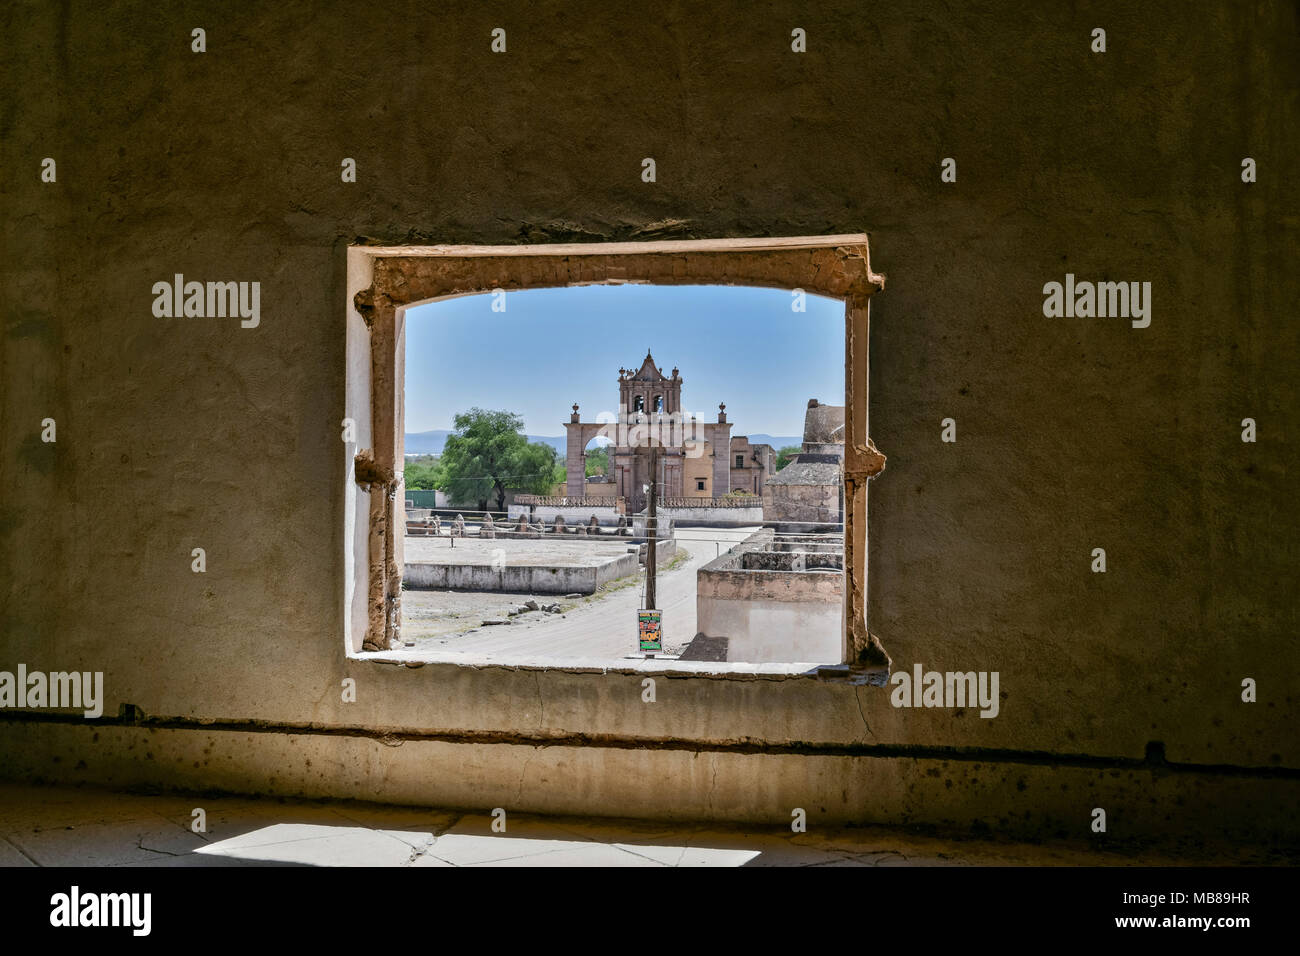 A view of the Moncado Burial Chapel from inside a crumbling room at the fading Hacienda de Jaral de Berrio in Jaral de Berrios, Guanajuato, Mexico. The abandoned Jaral de Berrio hacienda was once the largest in Mexico and housed over 6,000 people on the property and is credited with creating Mescal. - Stock Image